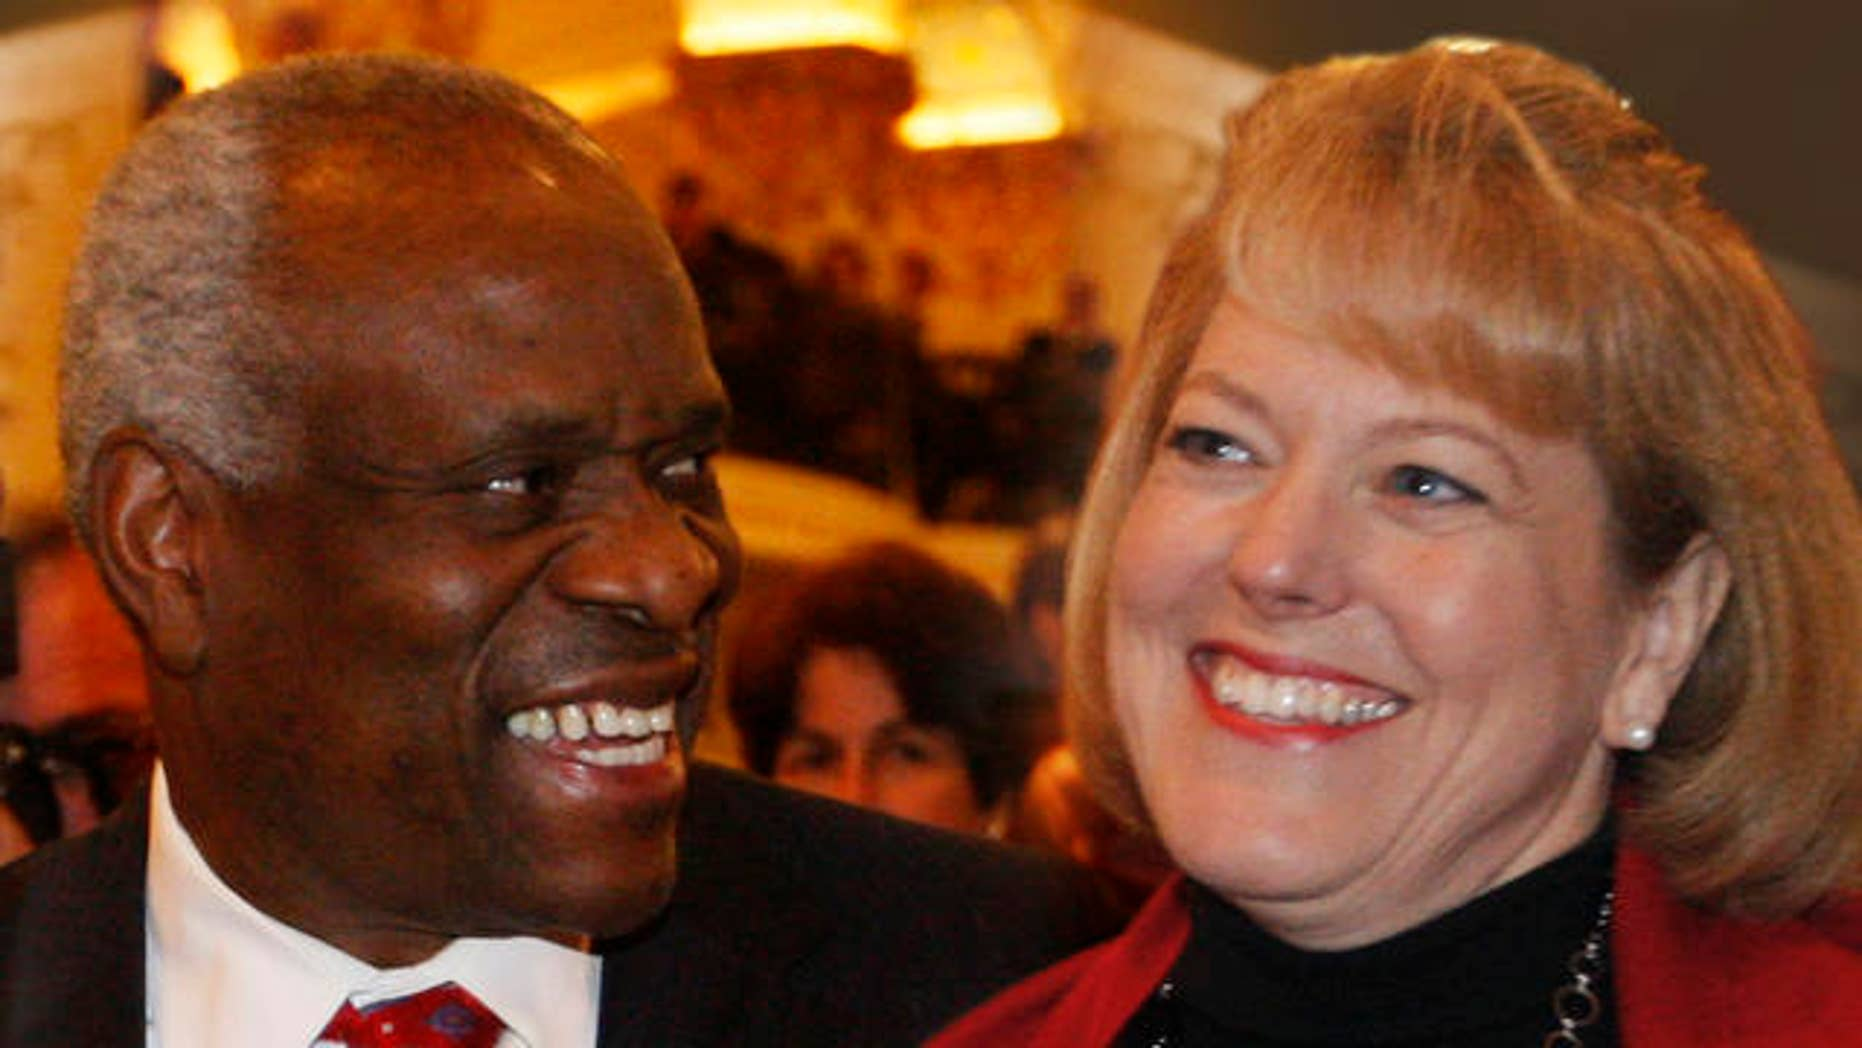 FILE: In this Nov. 15, 2007, photo, Supreme Court Justice Clarence Thomas, left, sits with his wife Virginia Thomas, as he is introduced at the Federalist Society in Washington.